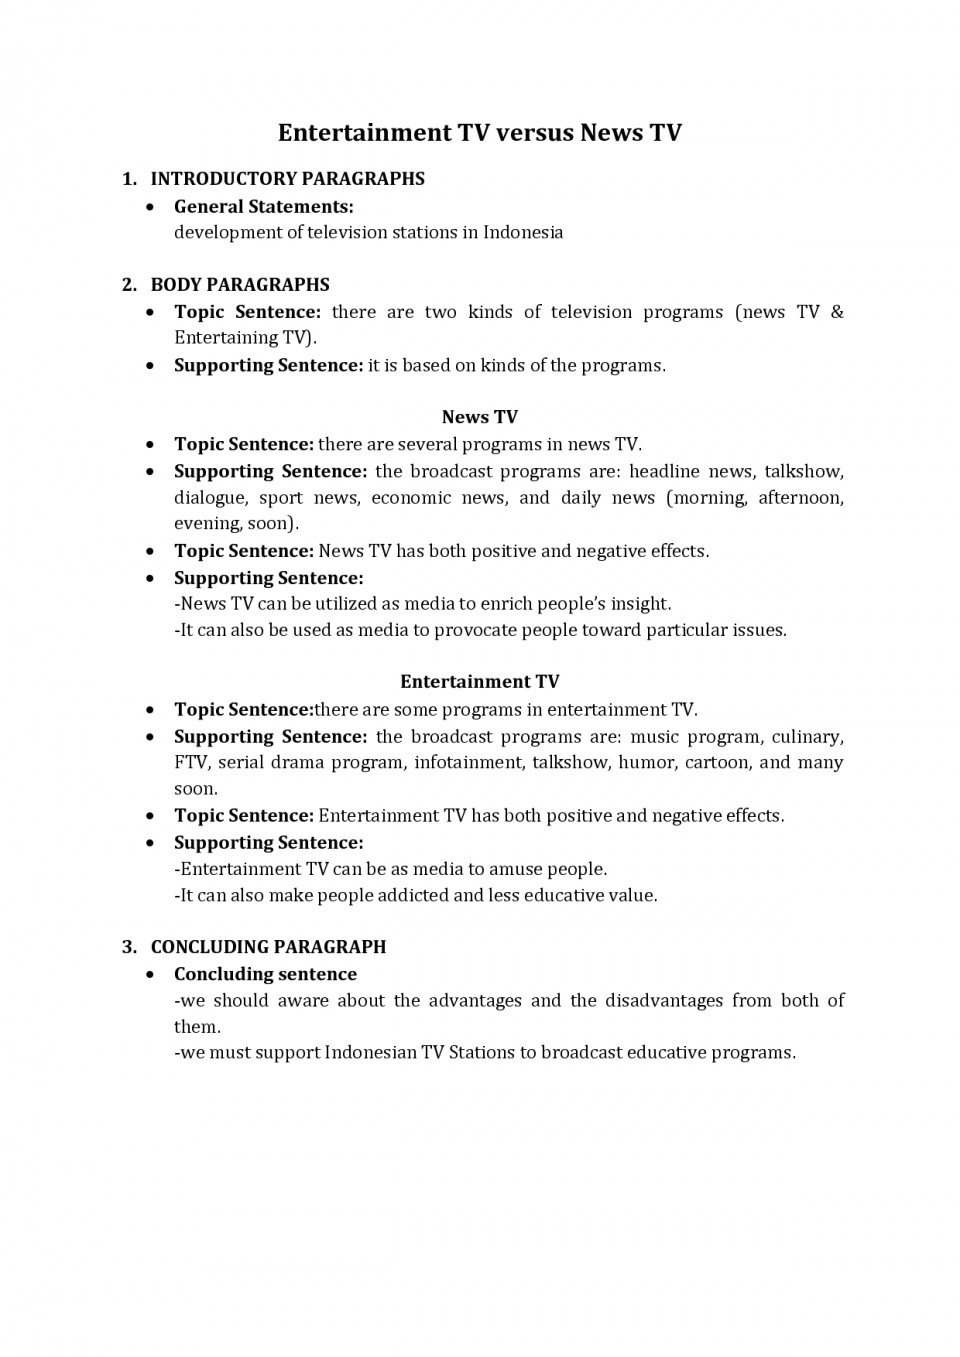 008 College Essay Outline Examples And Search On Pinterest Inmat Example How To Do An Astounding For Write A Formal Argumentative Create Persuasive Make Informative 960